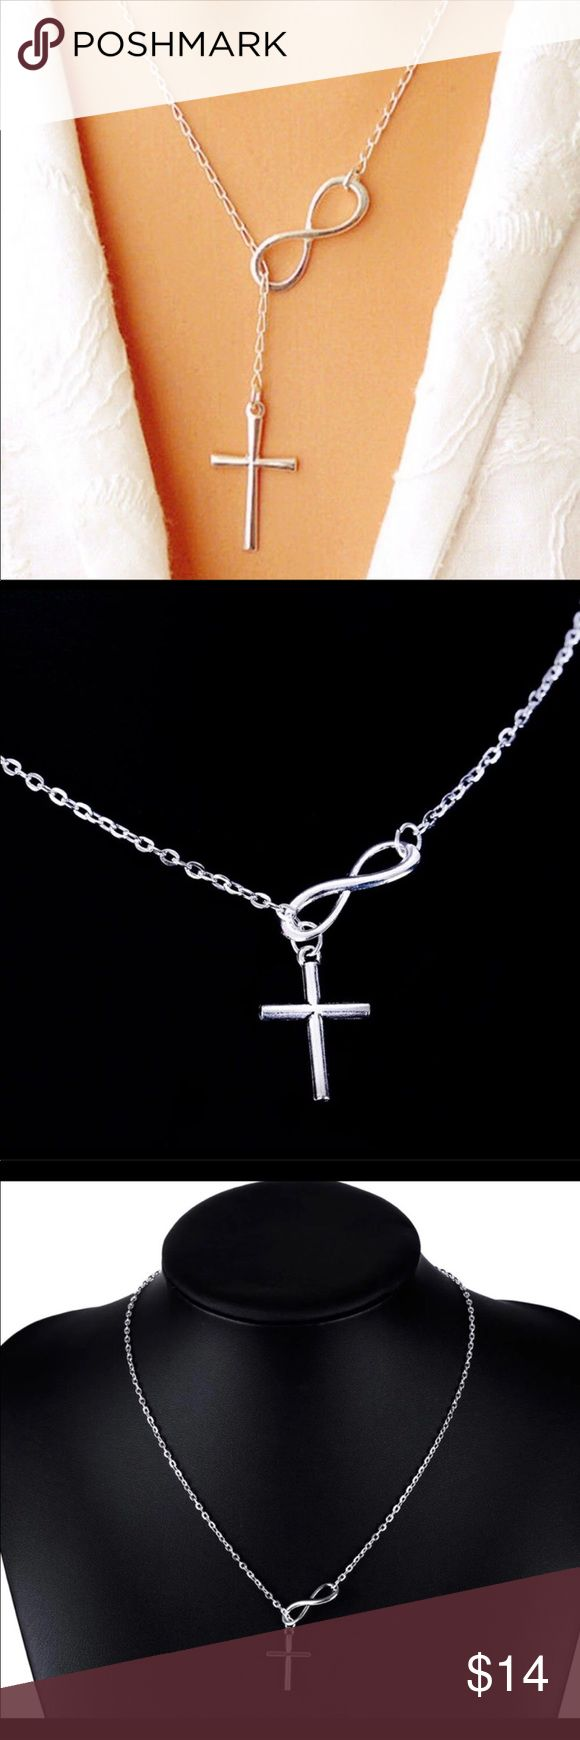 NEW INFINITY CROSS SLIDE LARIAT SILVER NECKLACE NEW Infinity cross necklace silver tone can be worn choker or lariat style. Bundle to save . Ships within 24 hours. Jewelry Necklaces